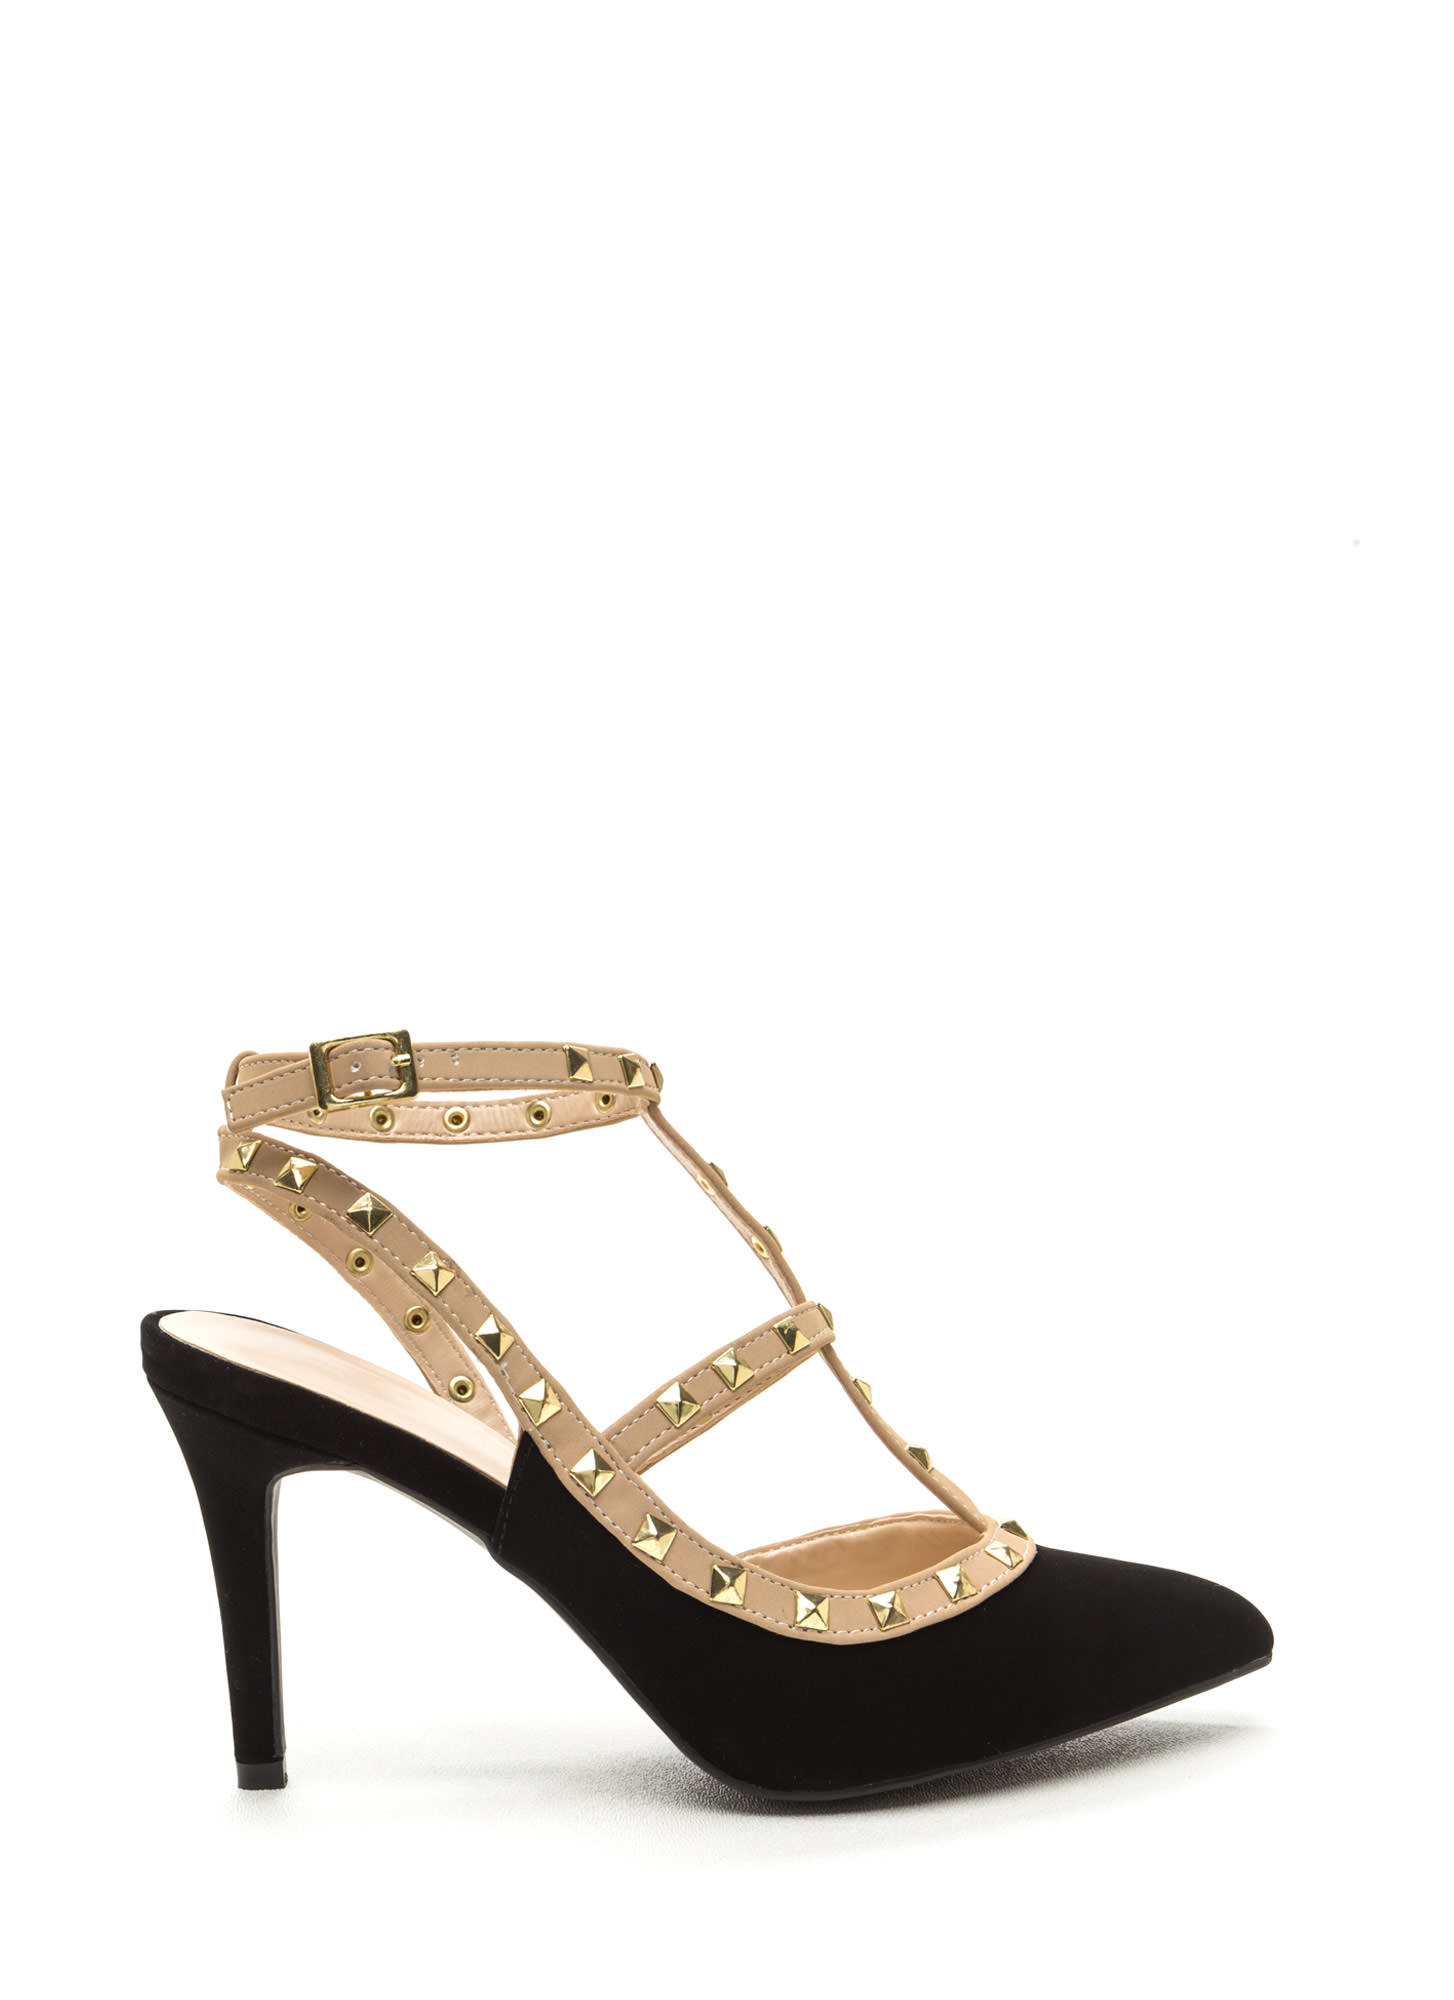 Good Sole Studded T-Strap Heels Image